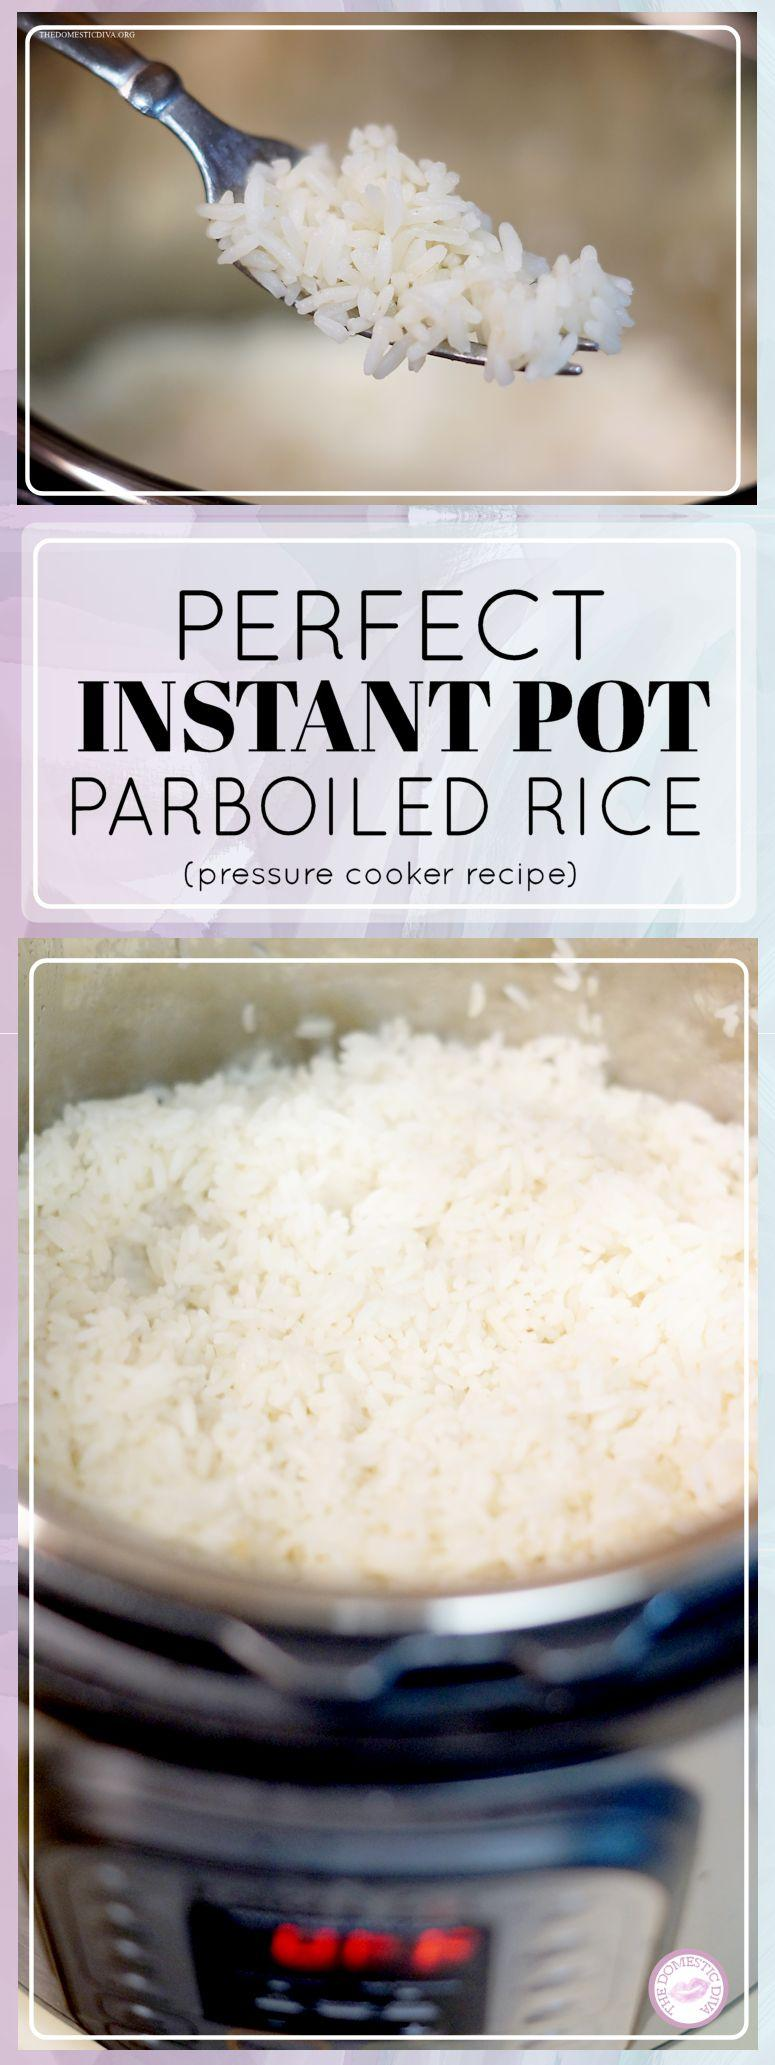 How to make perfect parboiled rice in an Instant Pot (pressure cooker recipe)